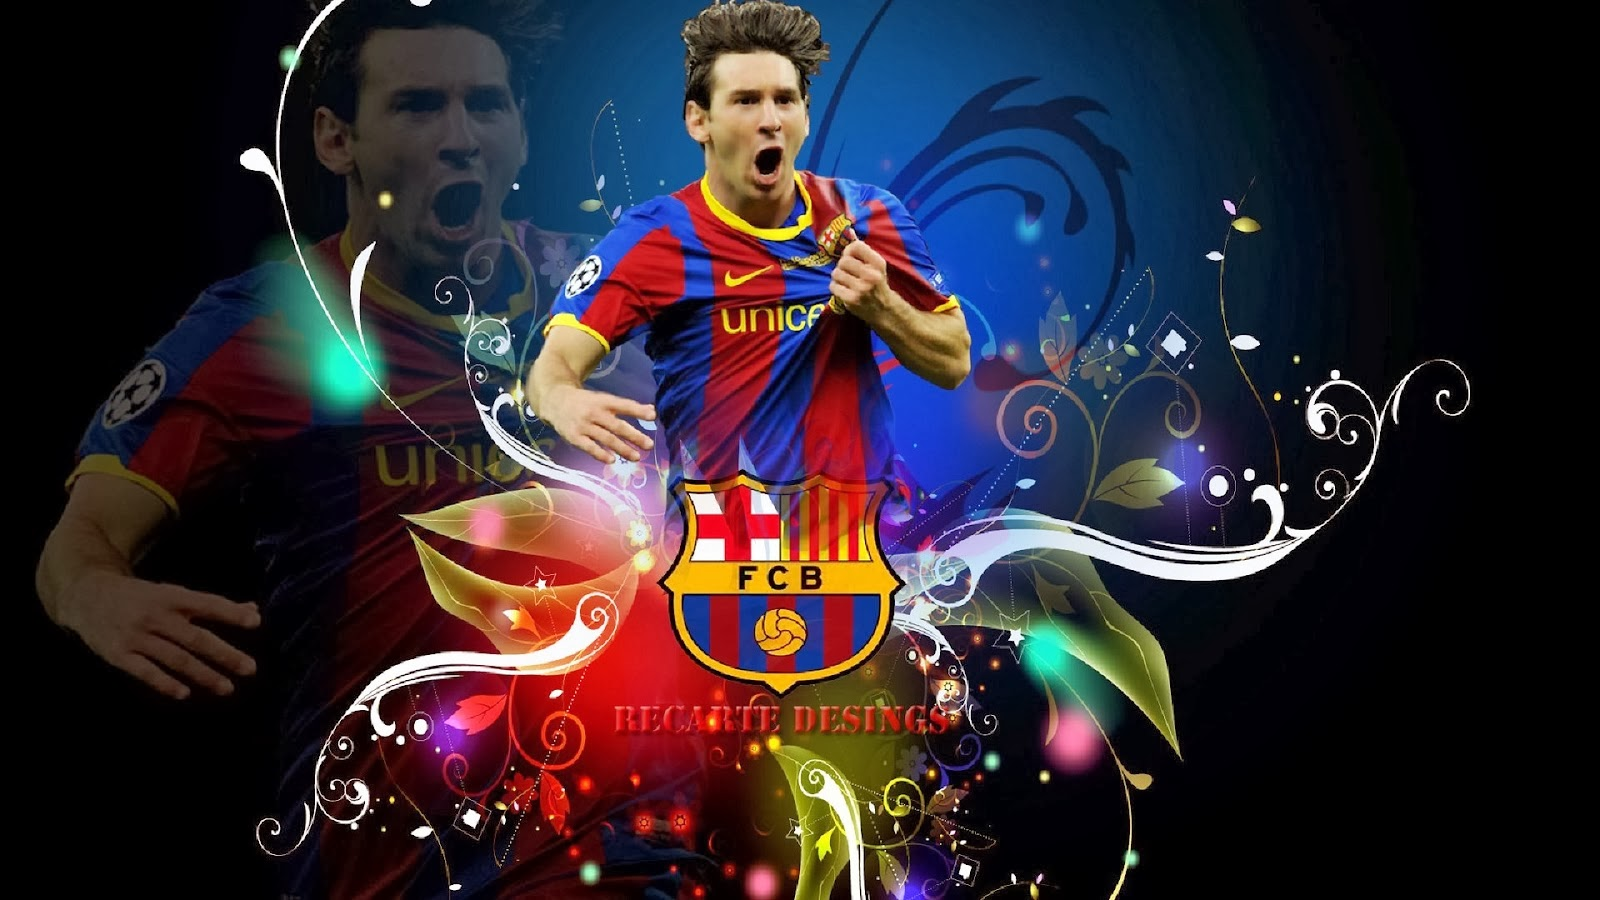 Lionel Messi 2014 HD Wallpaper Latest HD Wallpapers 1600x900